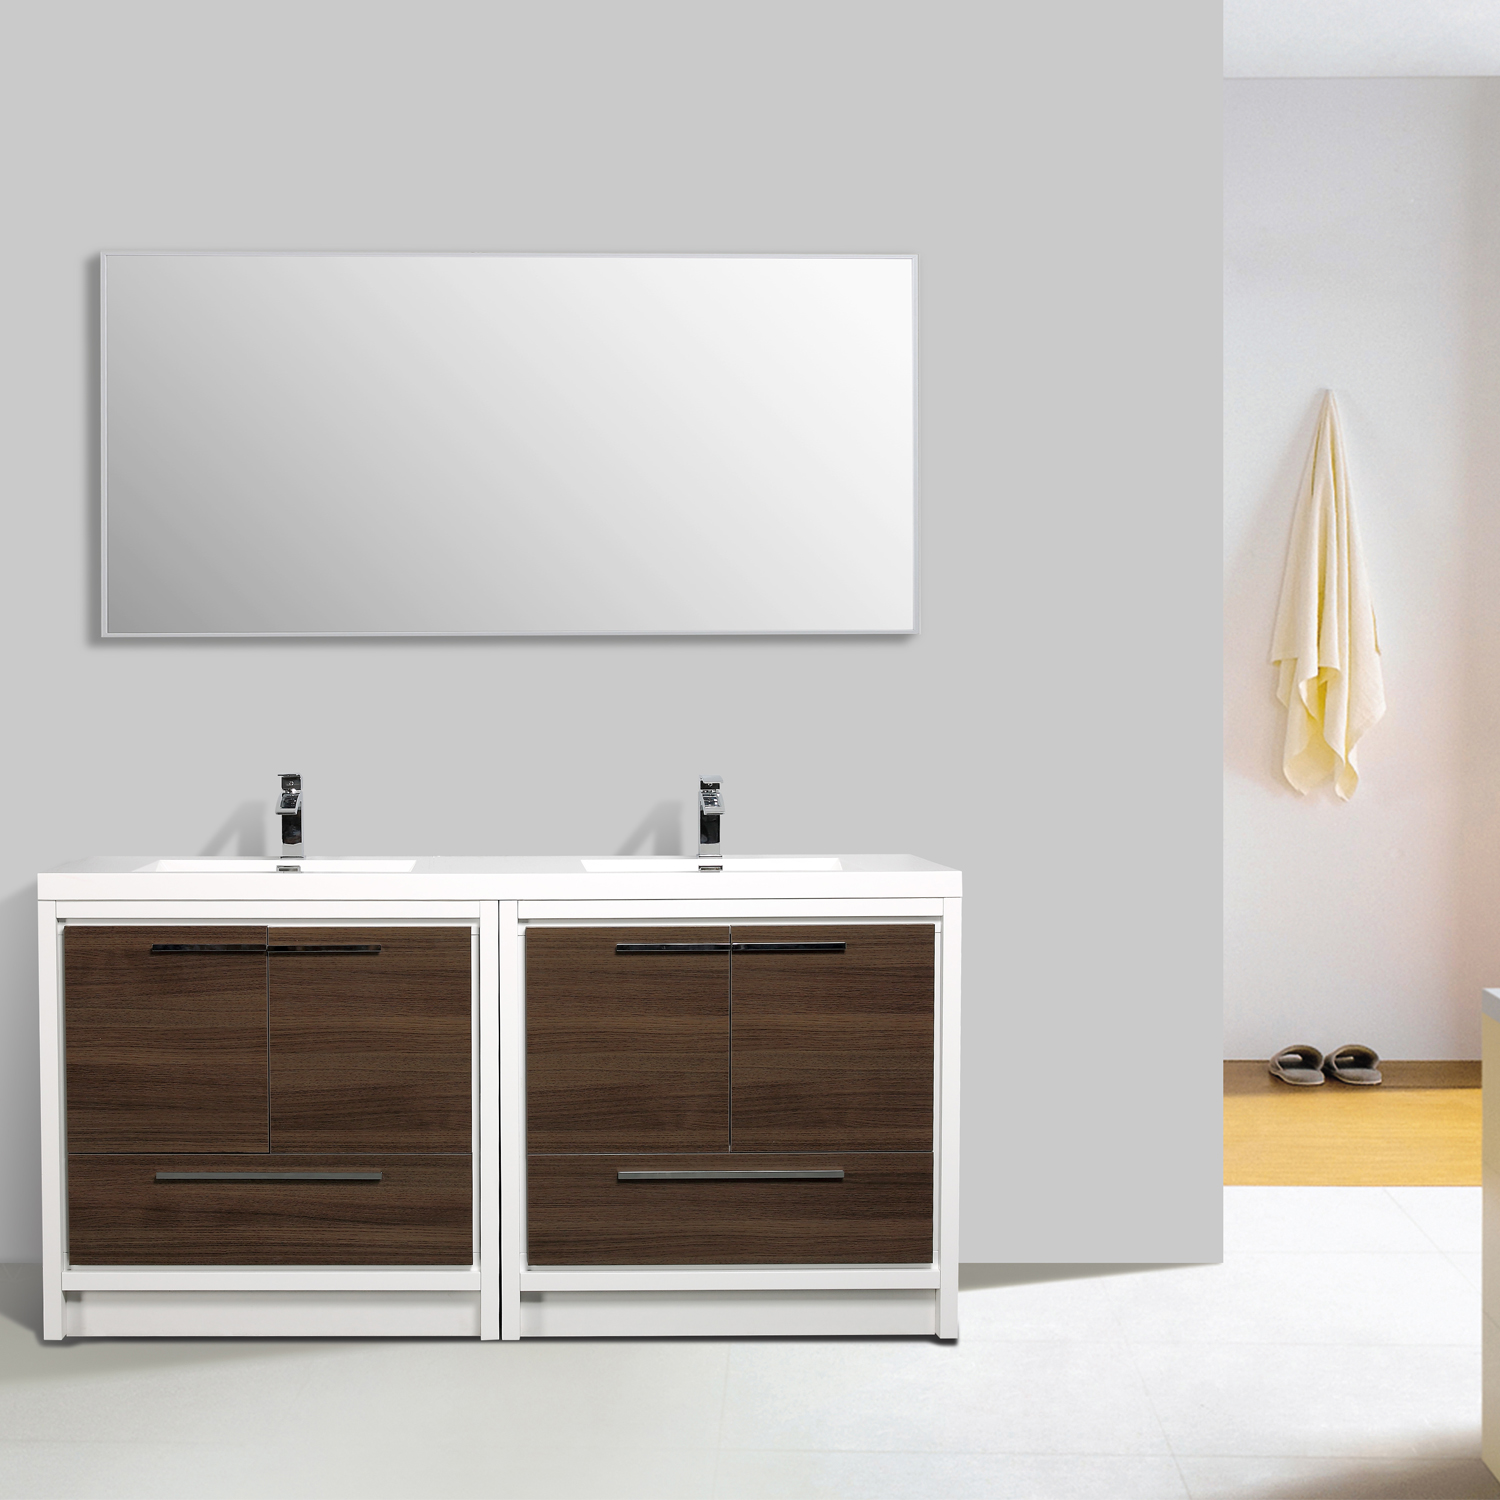 Sensational Eviva Grace 72 In Gray Oak And White Bathroom Vanity With Double White Integrated Acrylic Countertop Interior Design Ideas Inesswwsoteloinfo